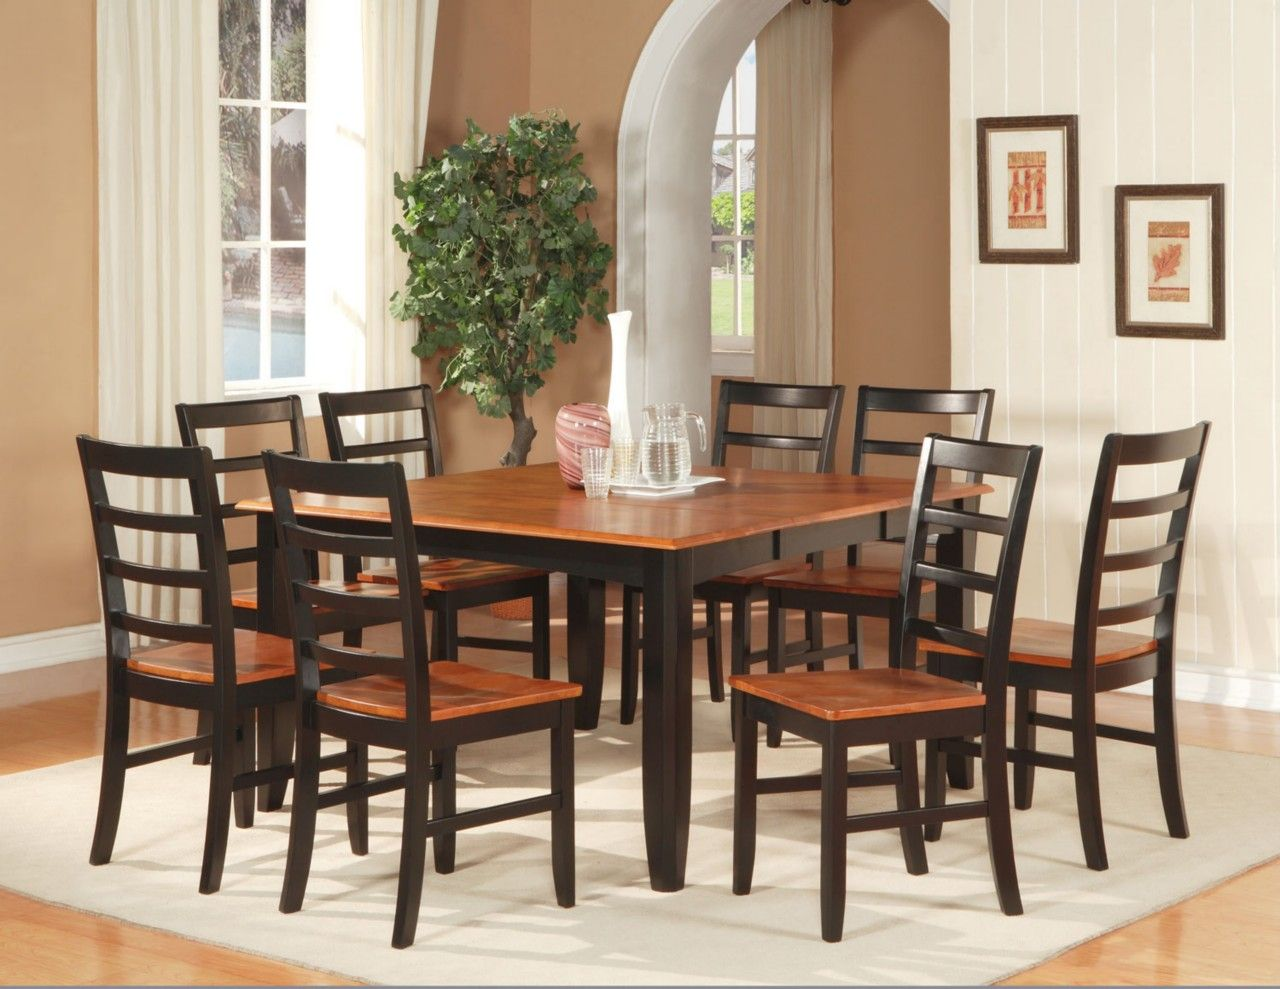 Details About 9 PC SQUARE DINETTE DINING ROOM TABLE SET AND 8 CHAIRS 2  Dining. Details About 9 PC SQUARE DINETTE DINING ROOM TABLE SET AND 8